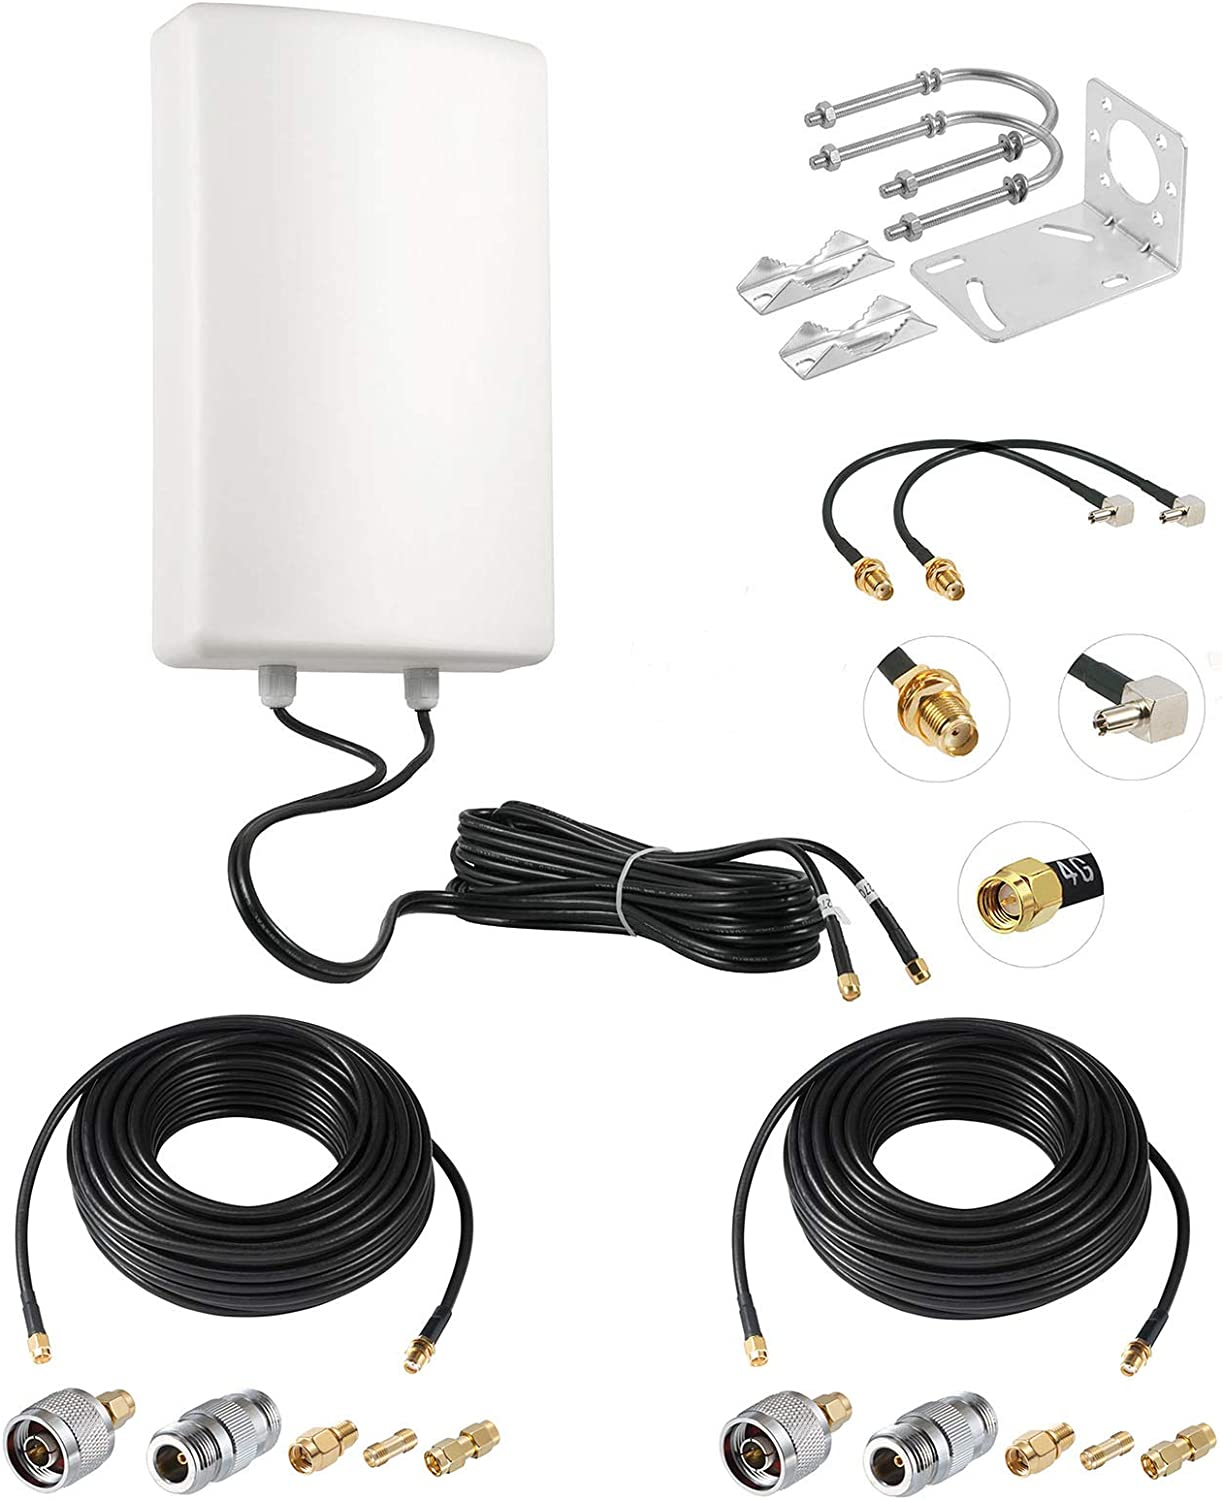 11dBi High Gain 4G LTE Outdoor Dual Polarized MIMO Antenna for Verizon AT&T T-Mobile Sprint Router Signal Booster Cellular Amplifier + 2 Kits 49.2 Feet SMA Extension Cable